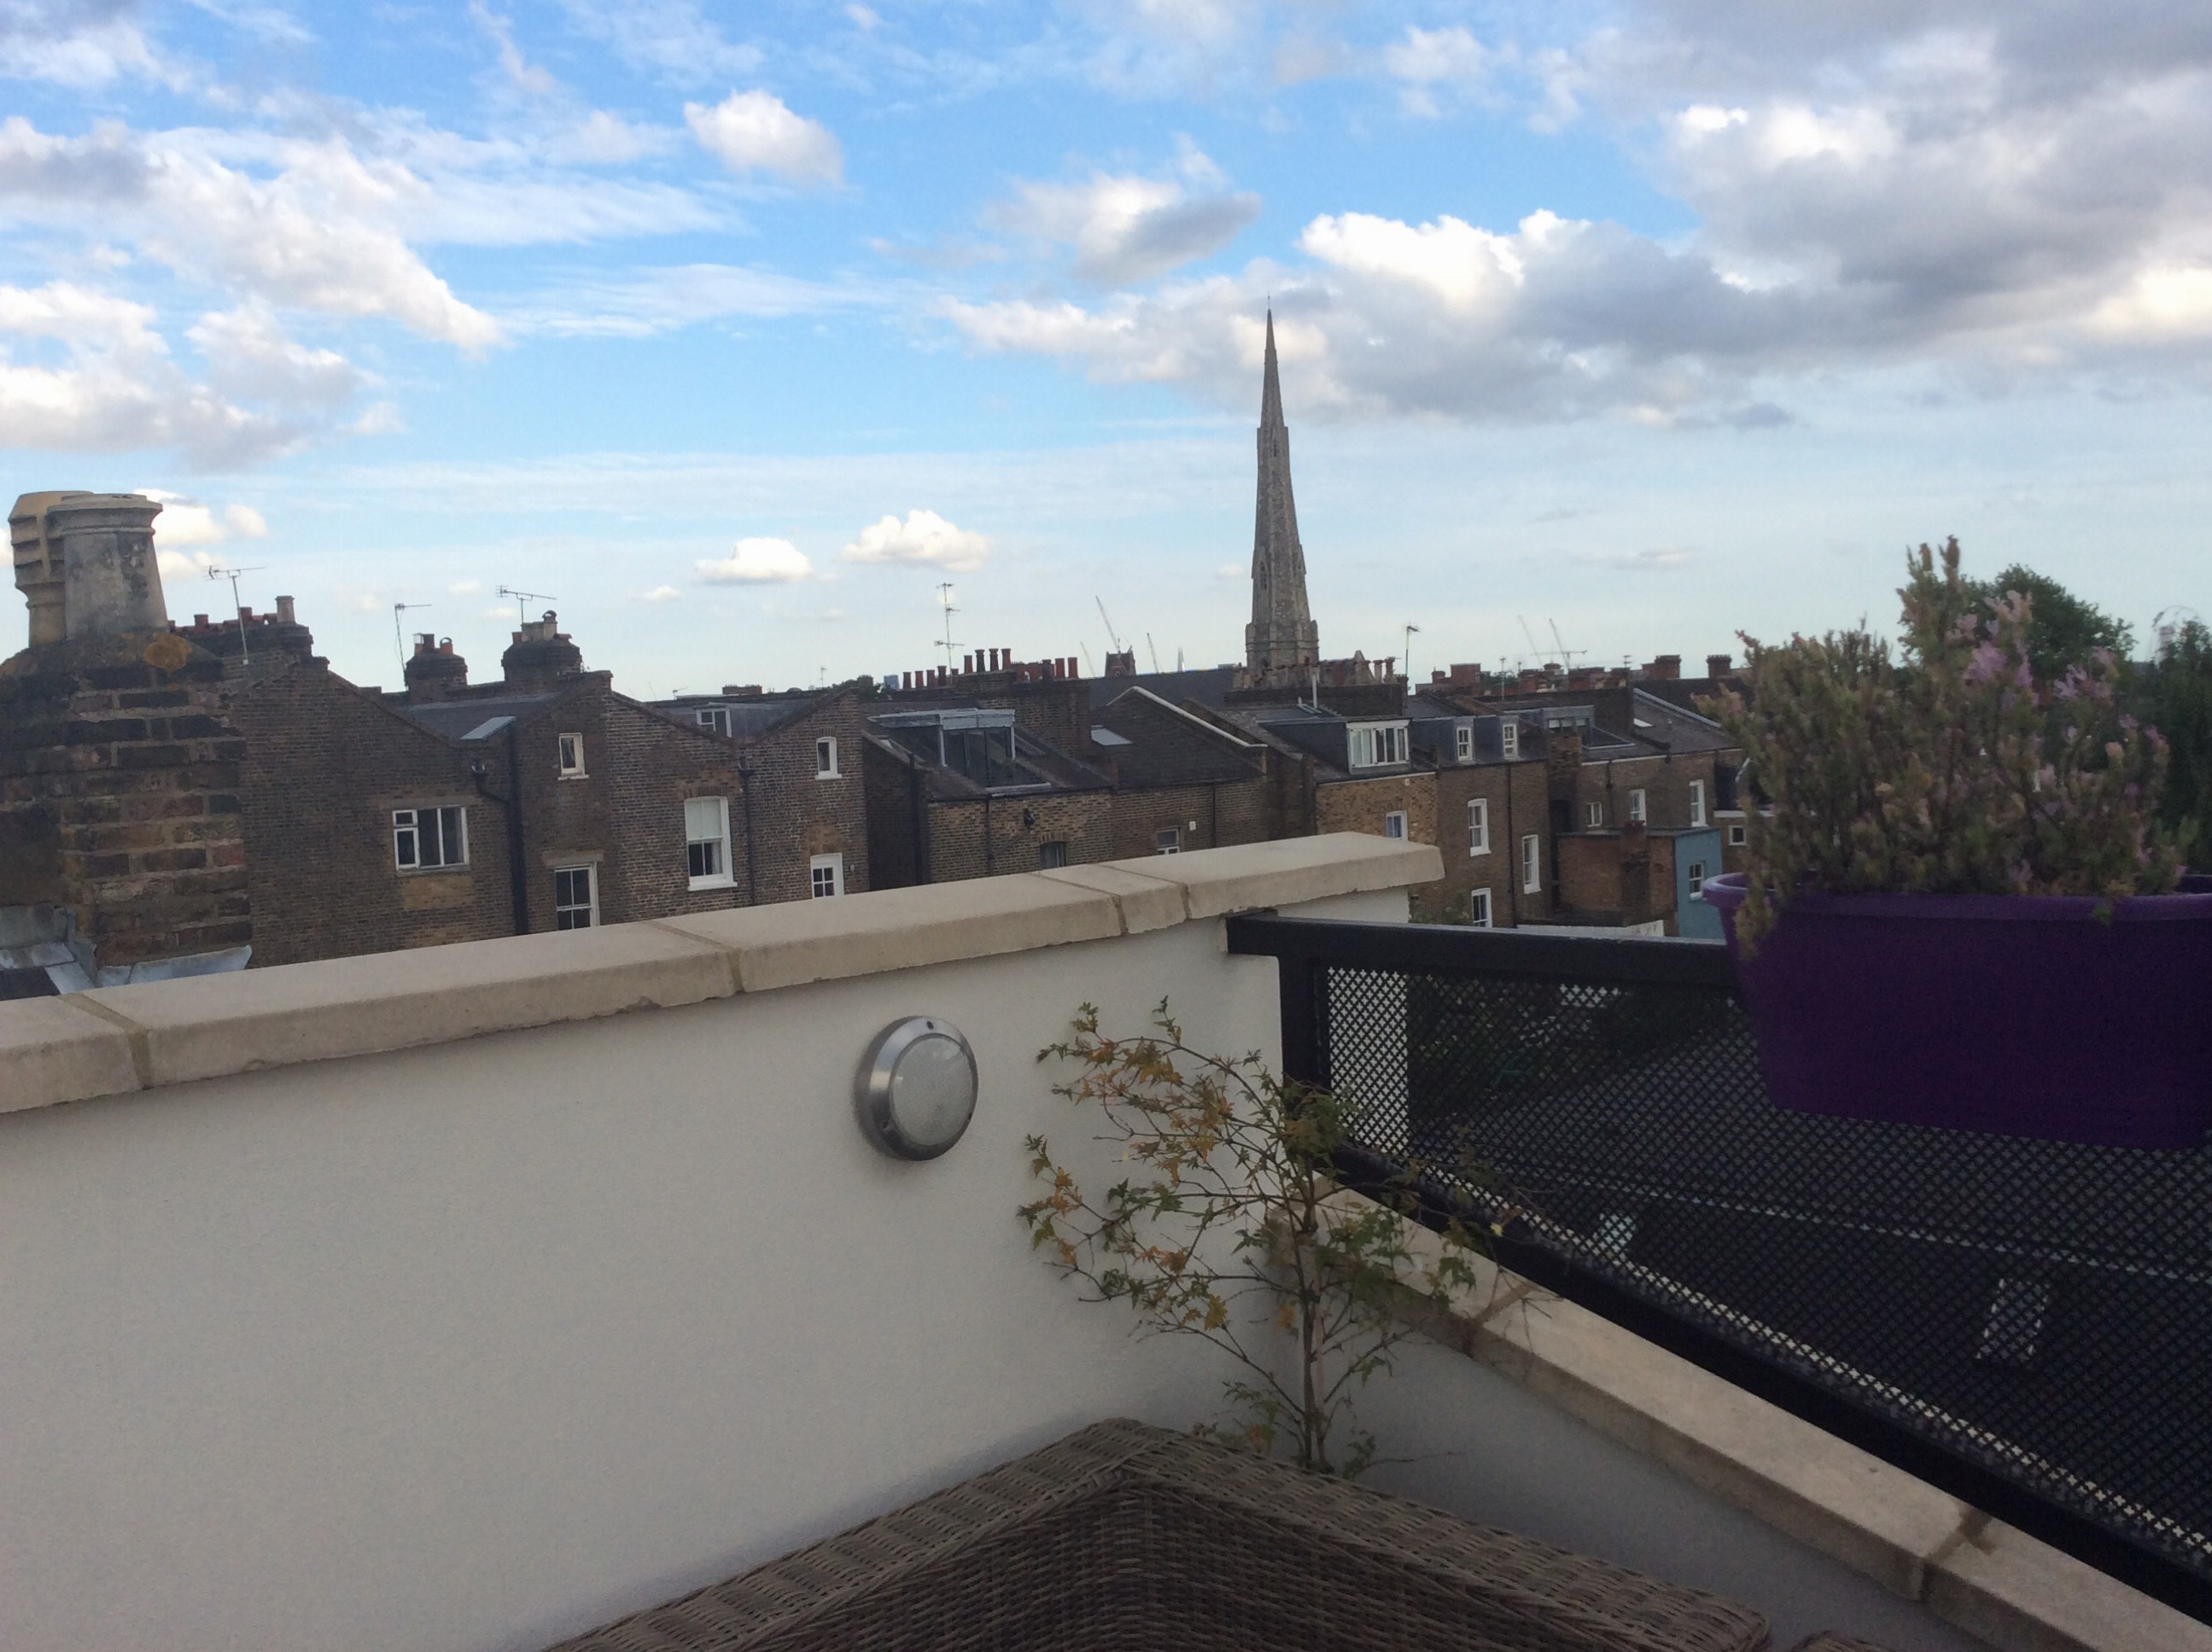 Looking south from Nicky's beautiful roof garden in Kentish Town (London)